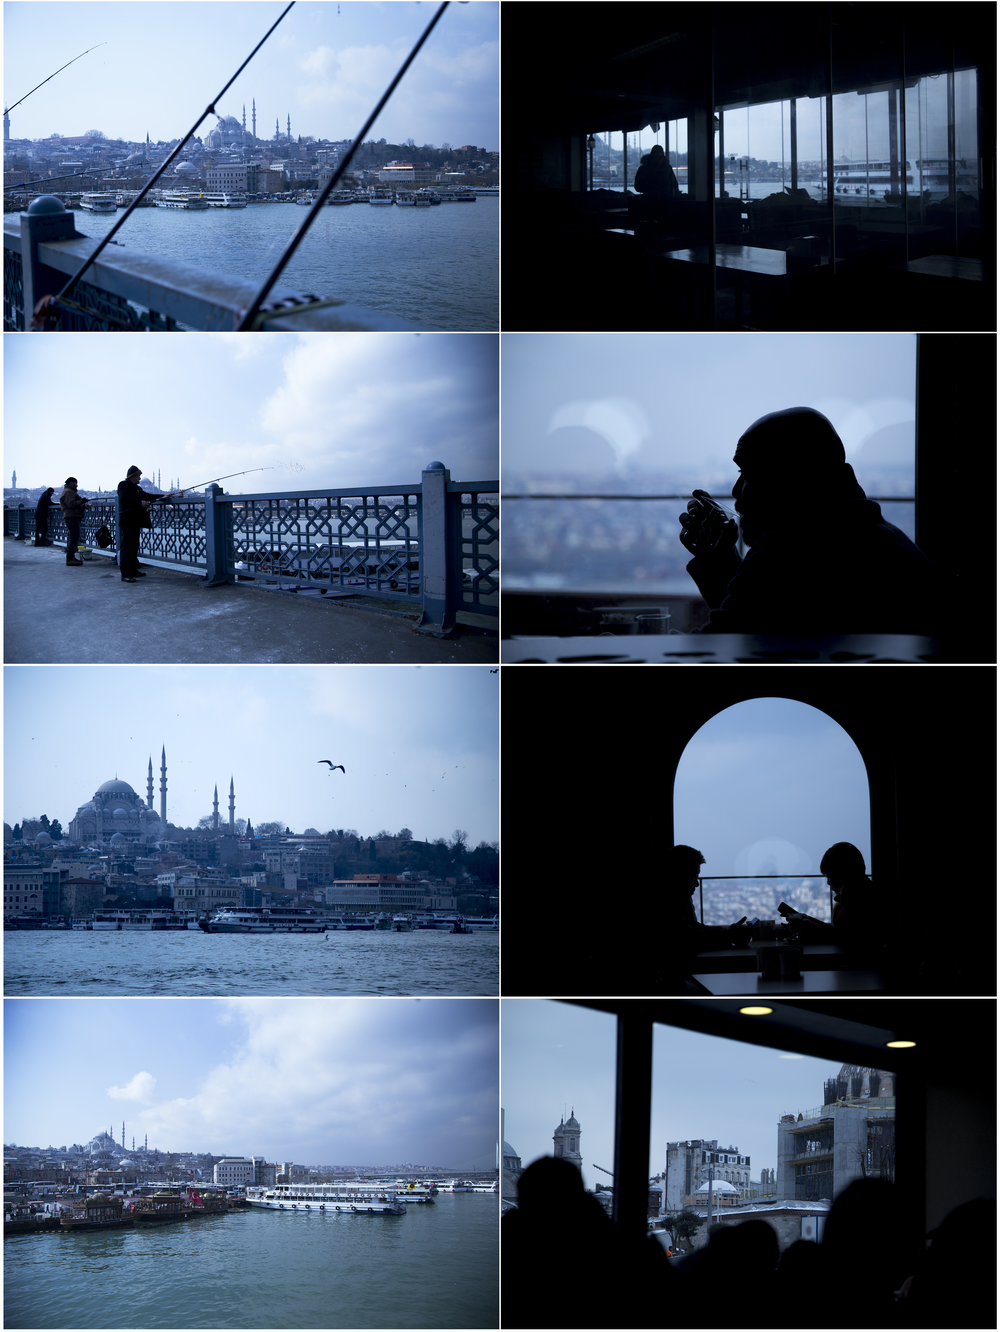 Photo series shot in Turkey